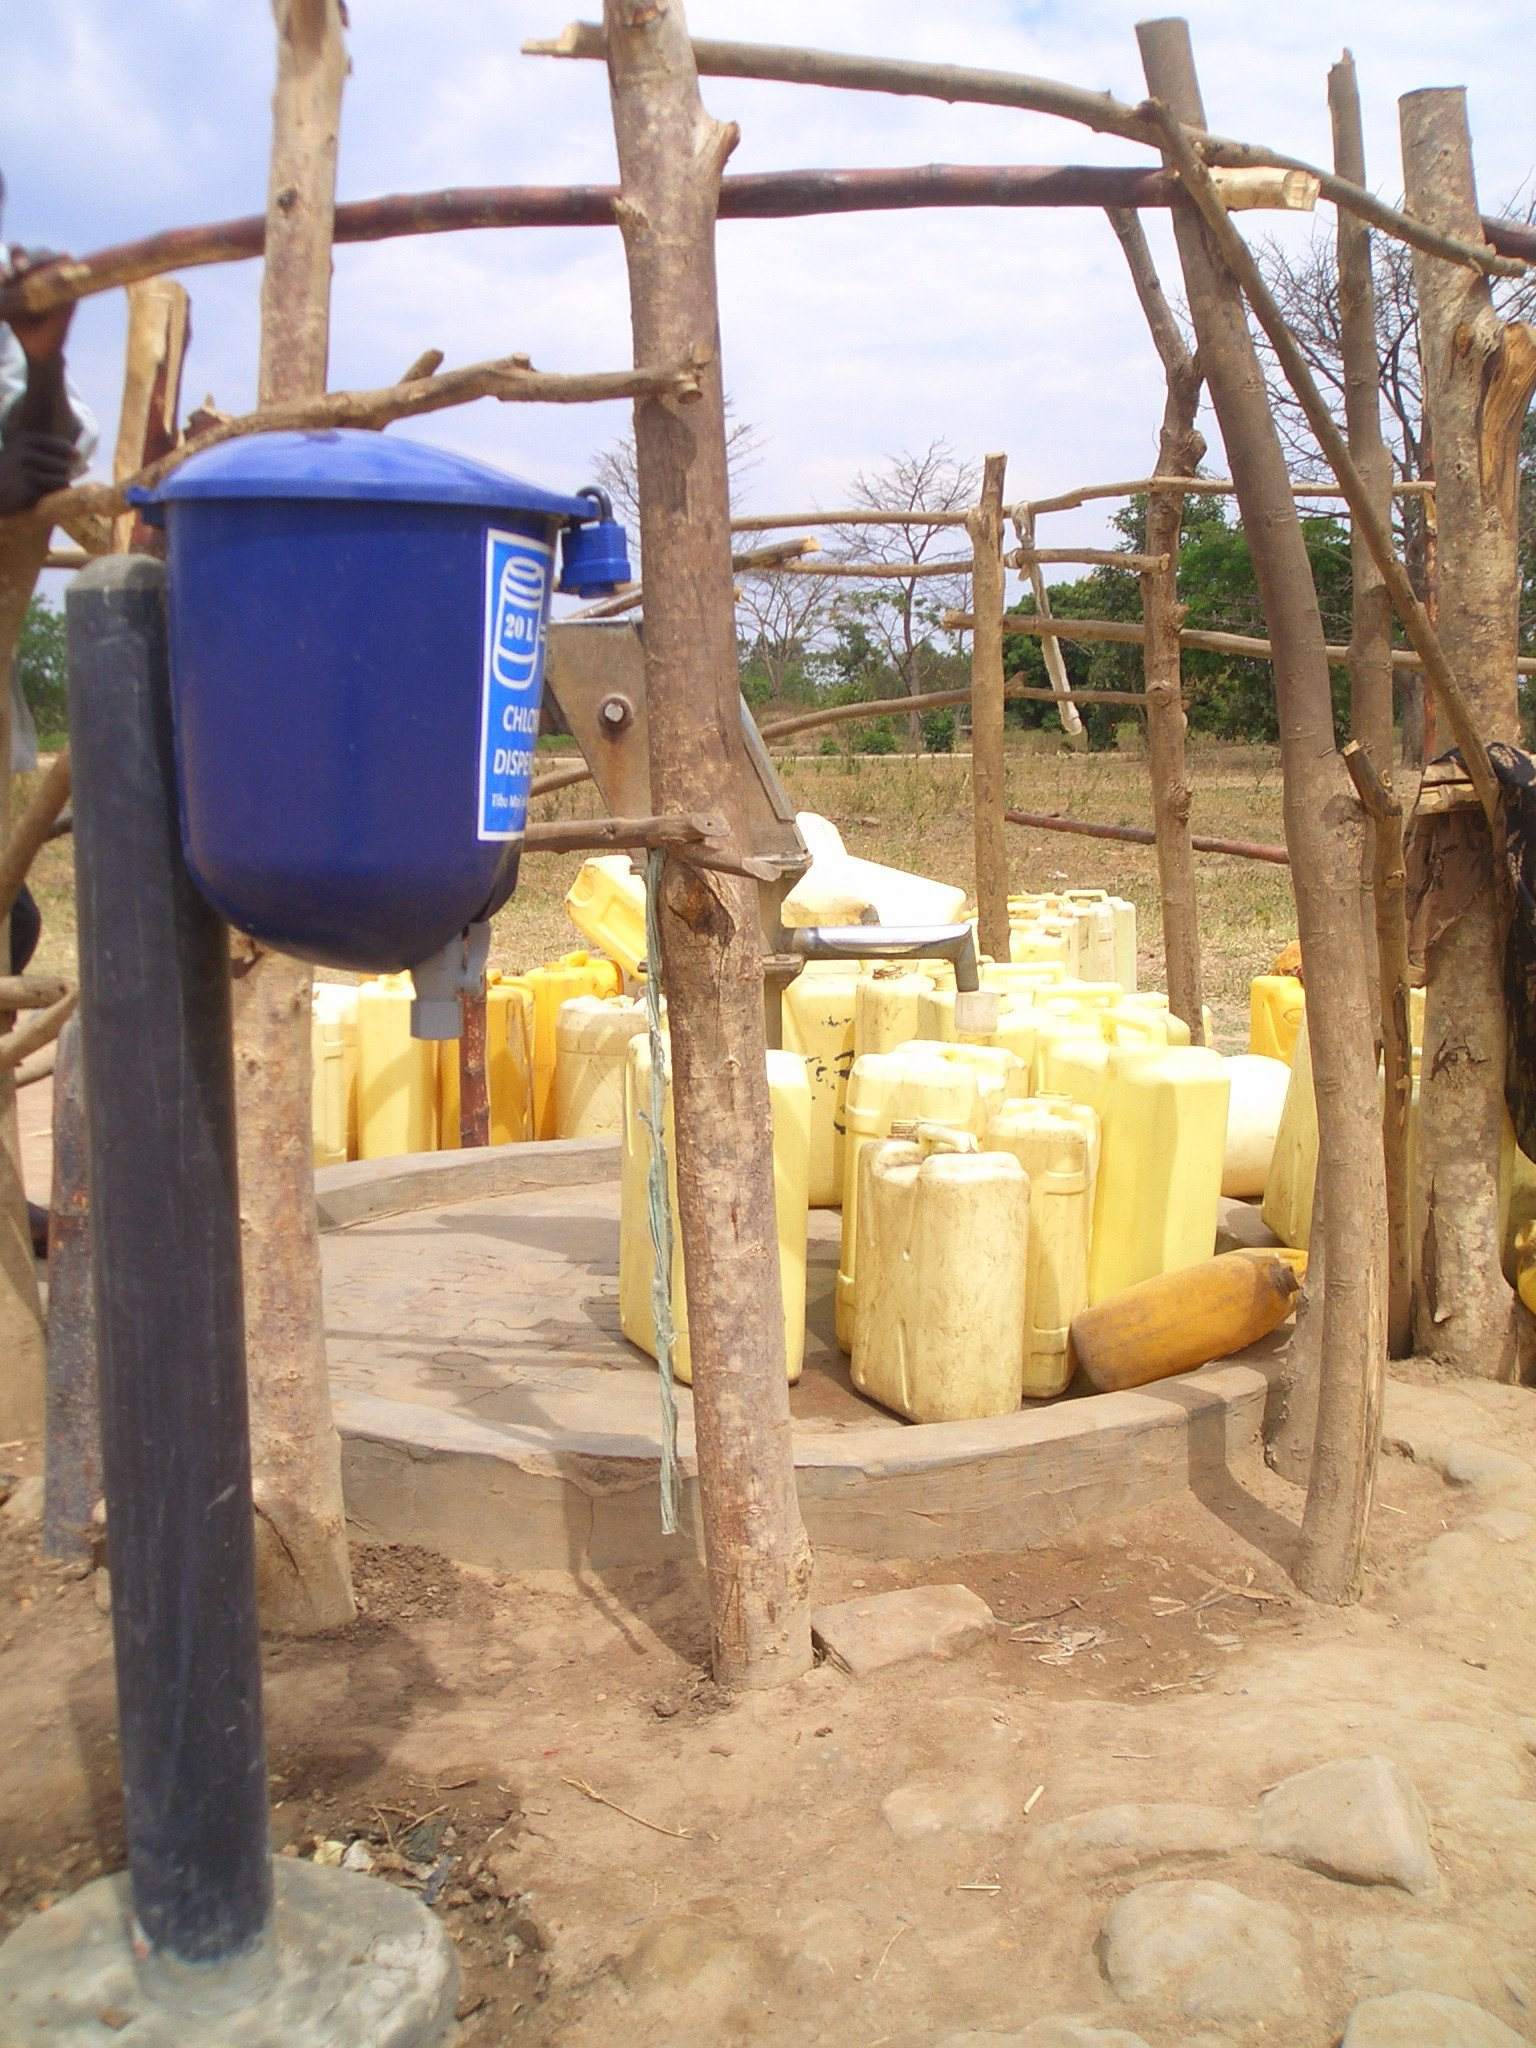 Sustained Adoption of a Rural Water Service: A New Systematic Review of the Evidence